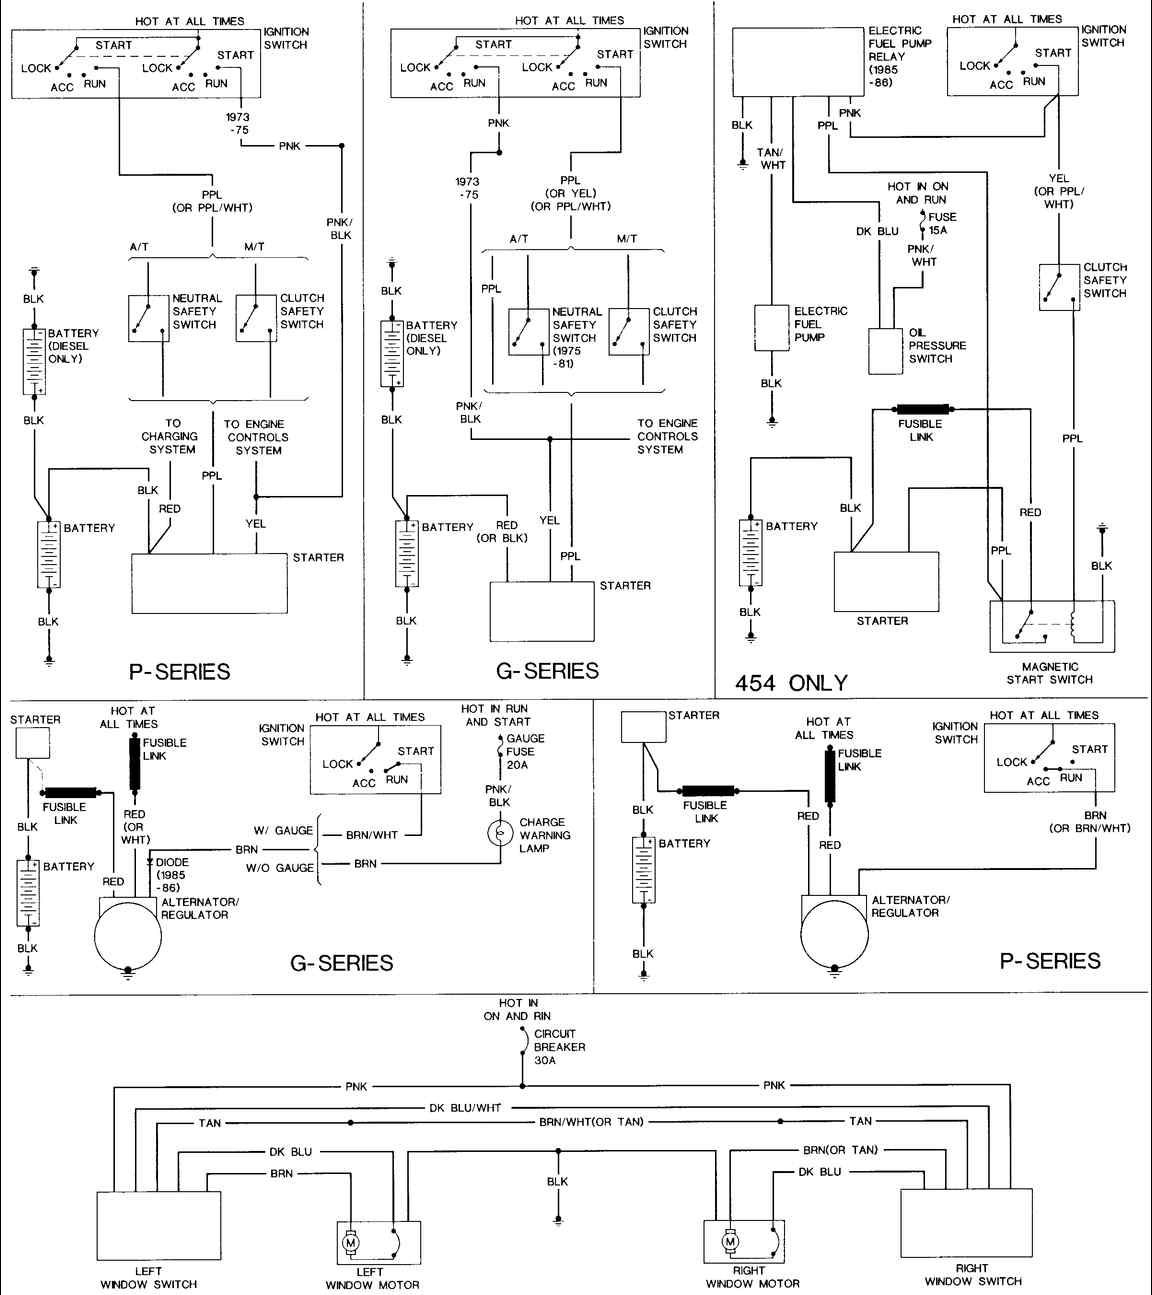 85 chevy truck wiring diagram 85 chevy van the steering column rh pinterest com Steering Column Wiring Diagram for Hyundai chevy tahoe column wiring schematic